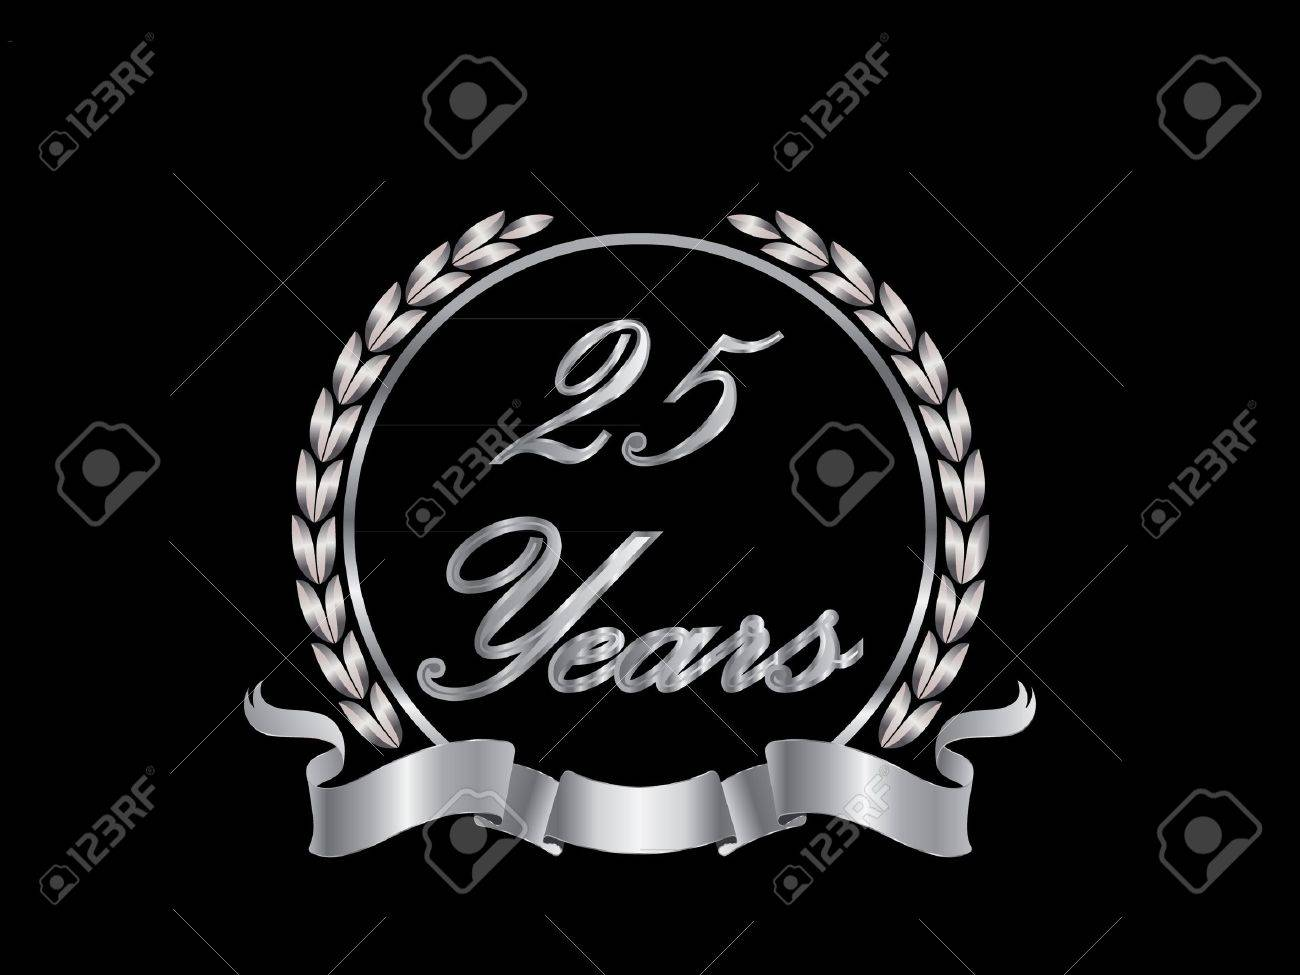 25 Years Stock Vector - 10599309